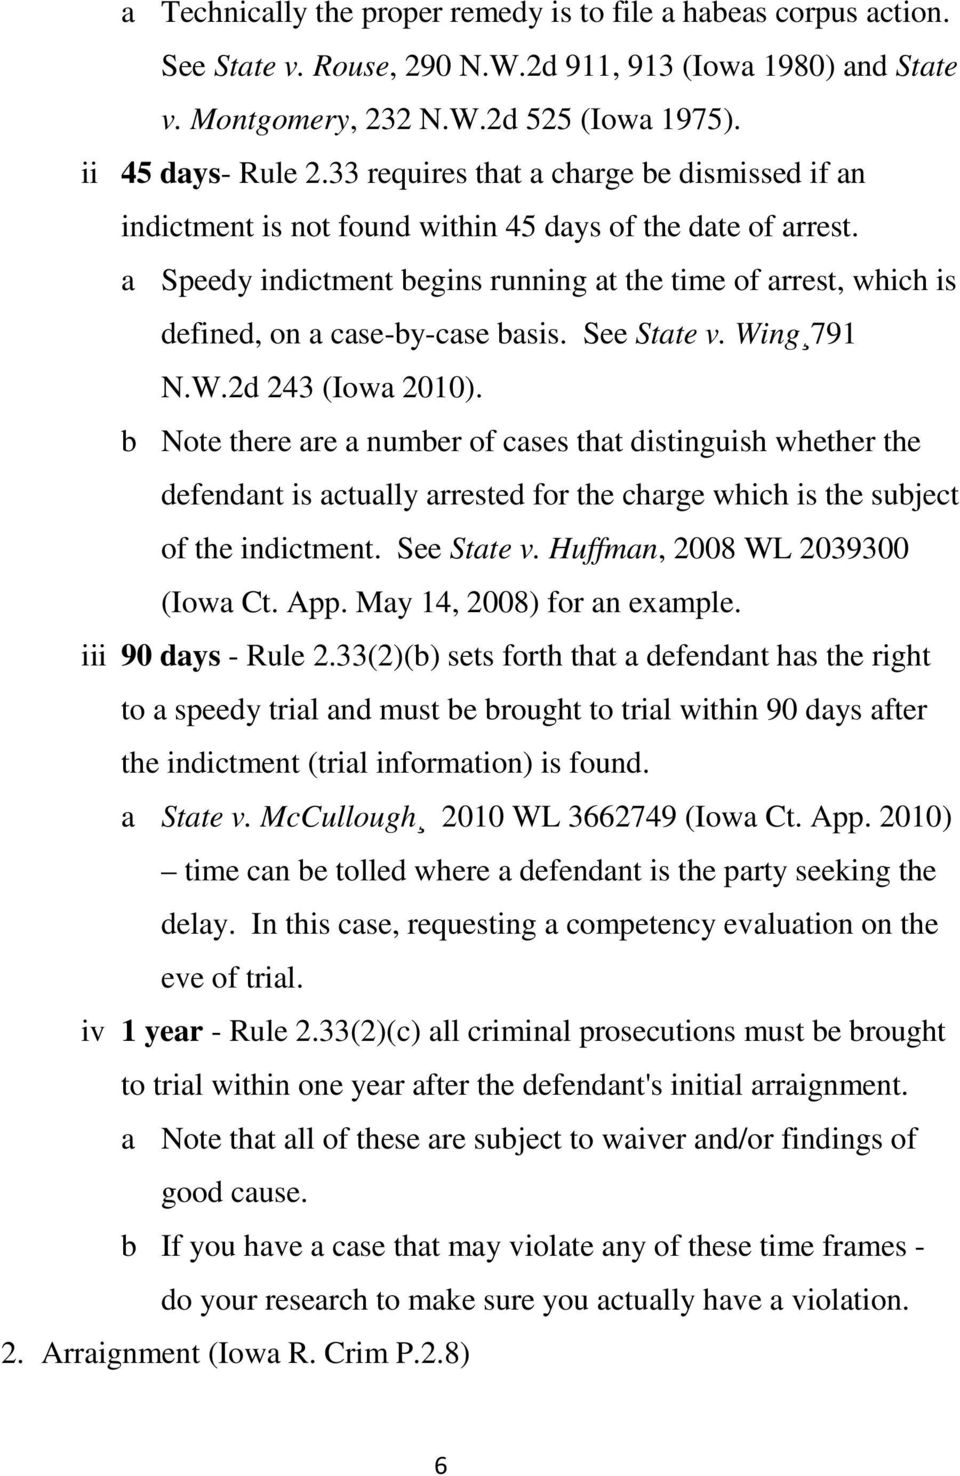 a Speedy indictment begins running at the time of arrest, which is defined, on a case-by-case basis. See State v. Wing 791 N.W.2d 243 (Iowa 2010).